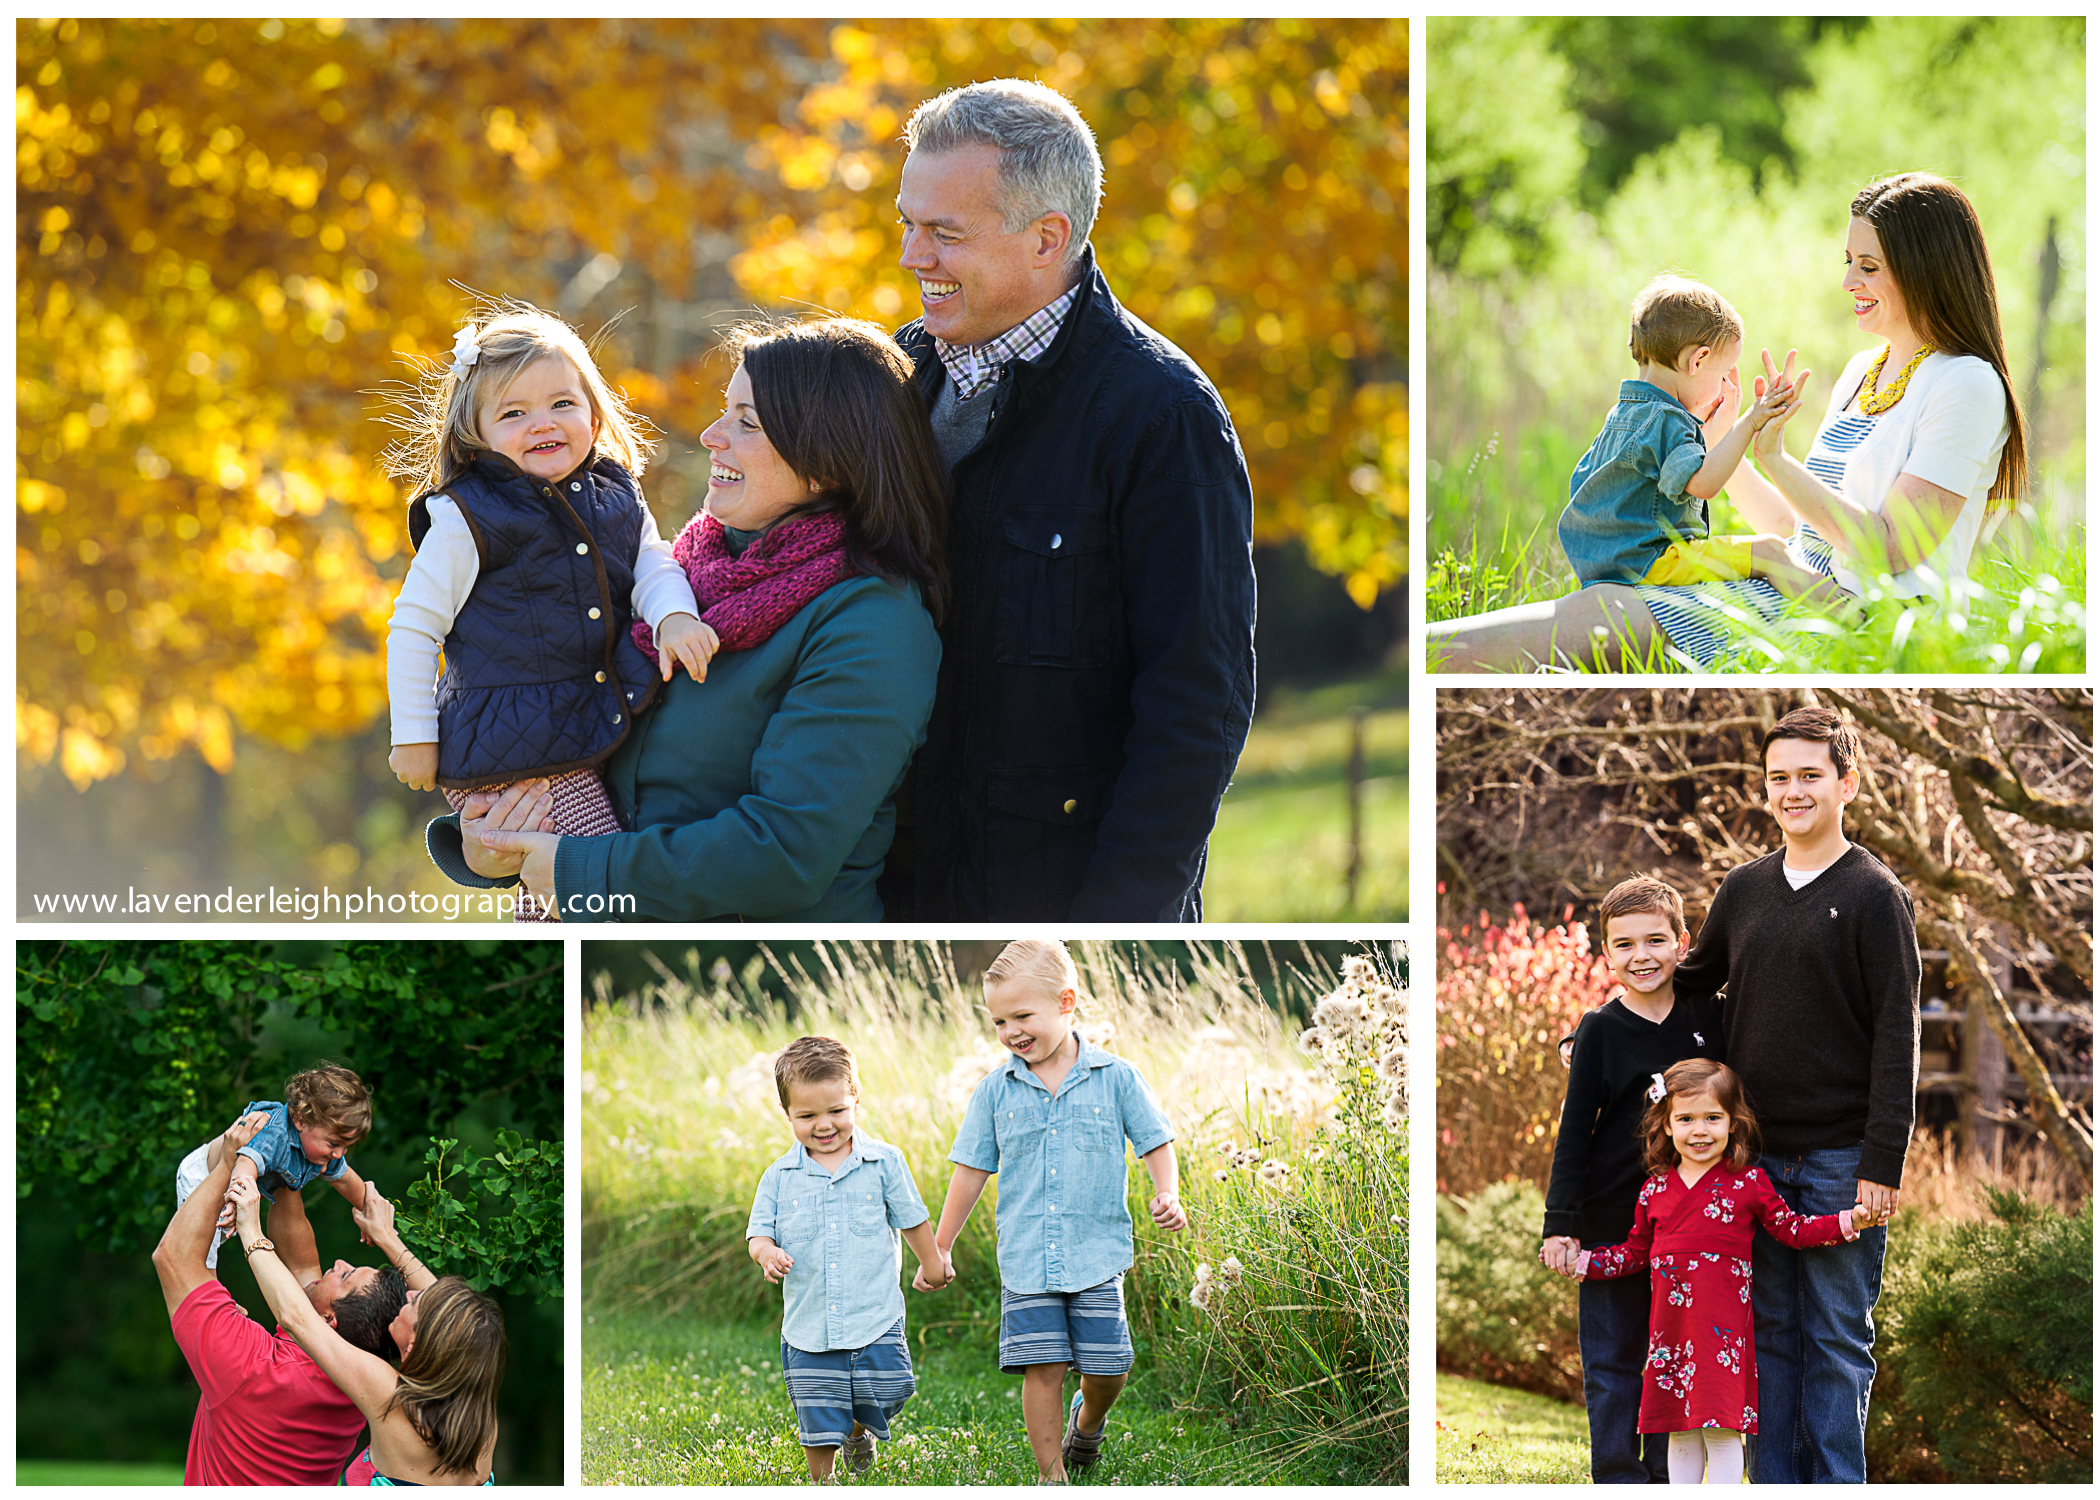 Family Portrait Sessions- Lavender Leigh Photography